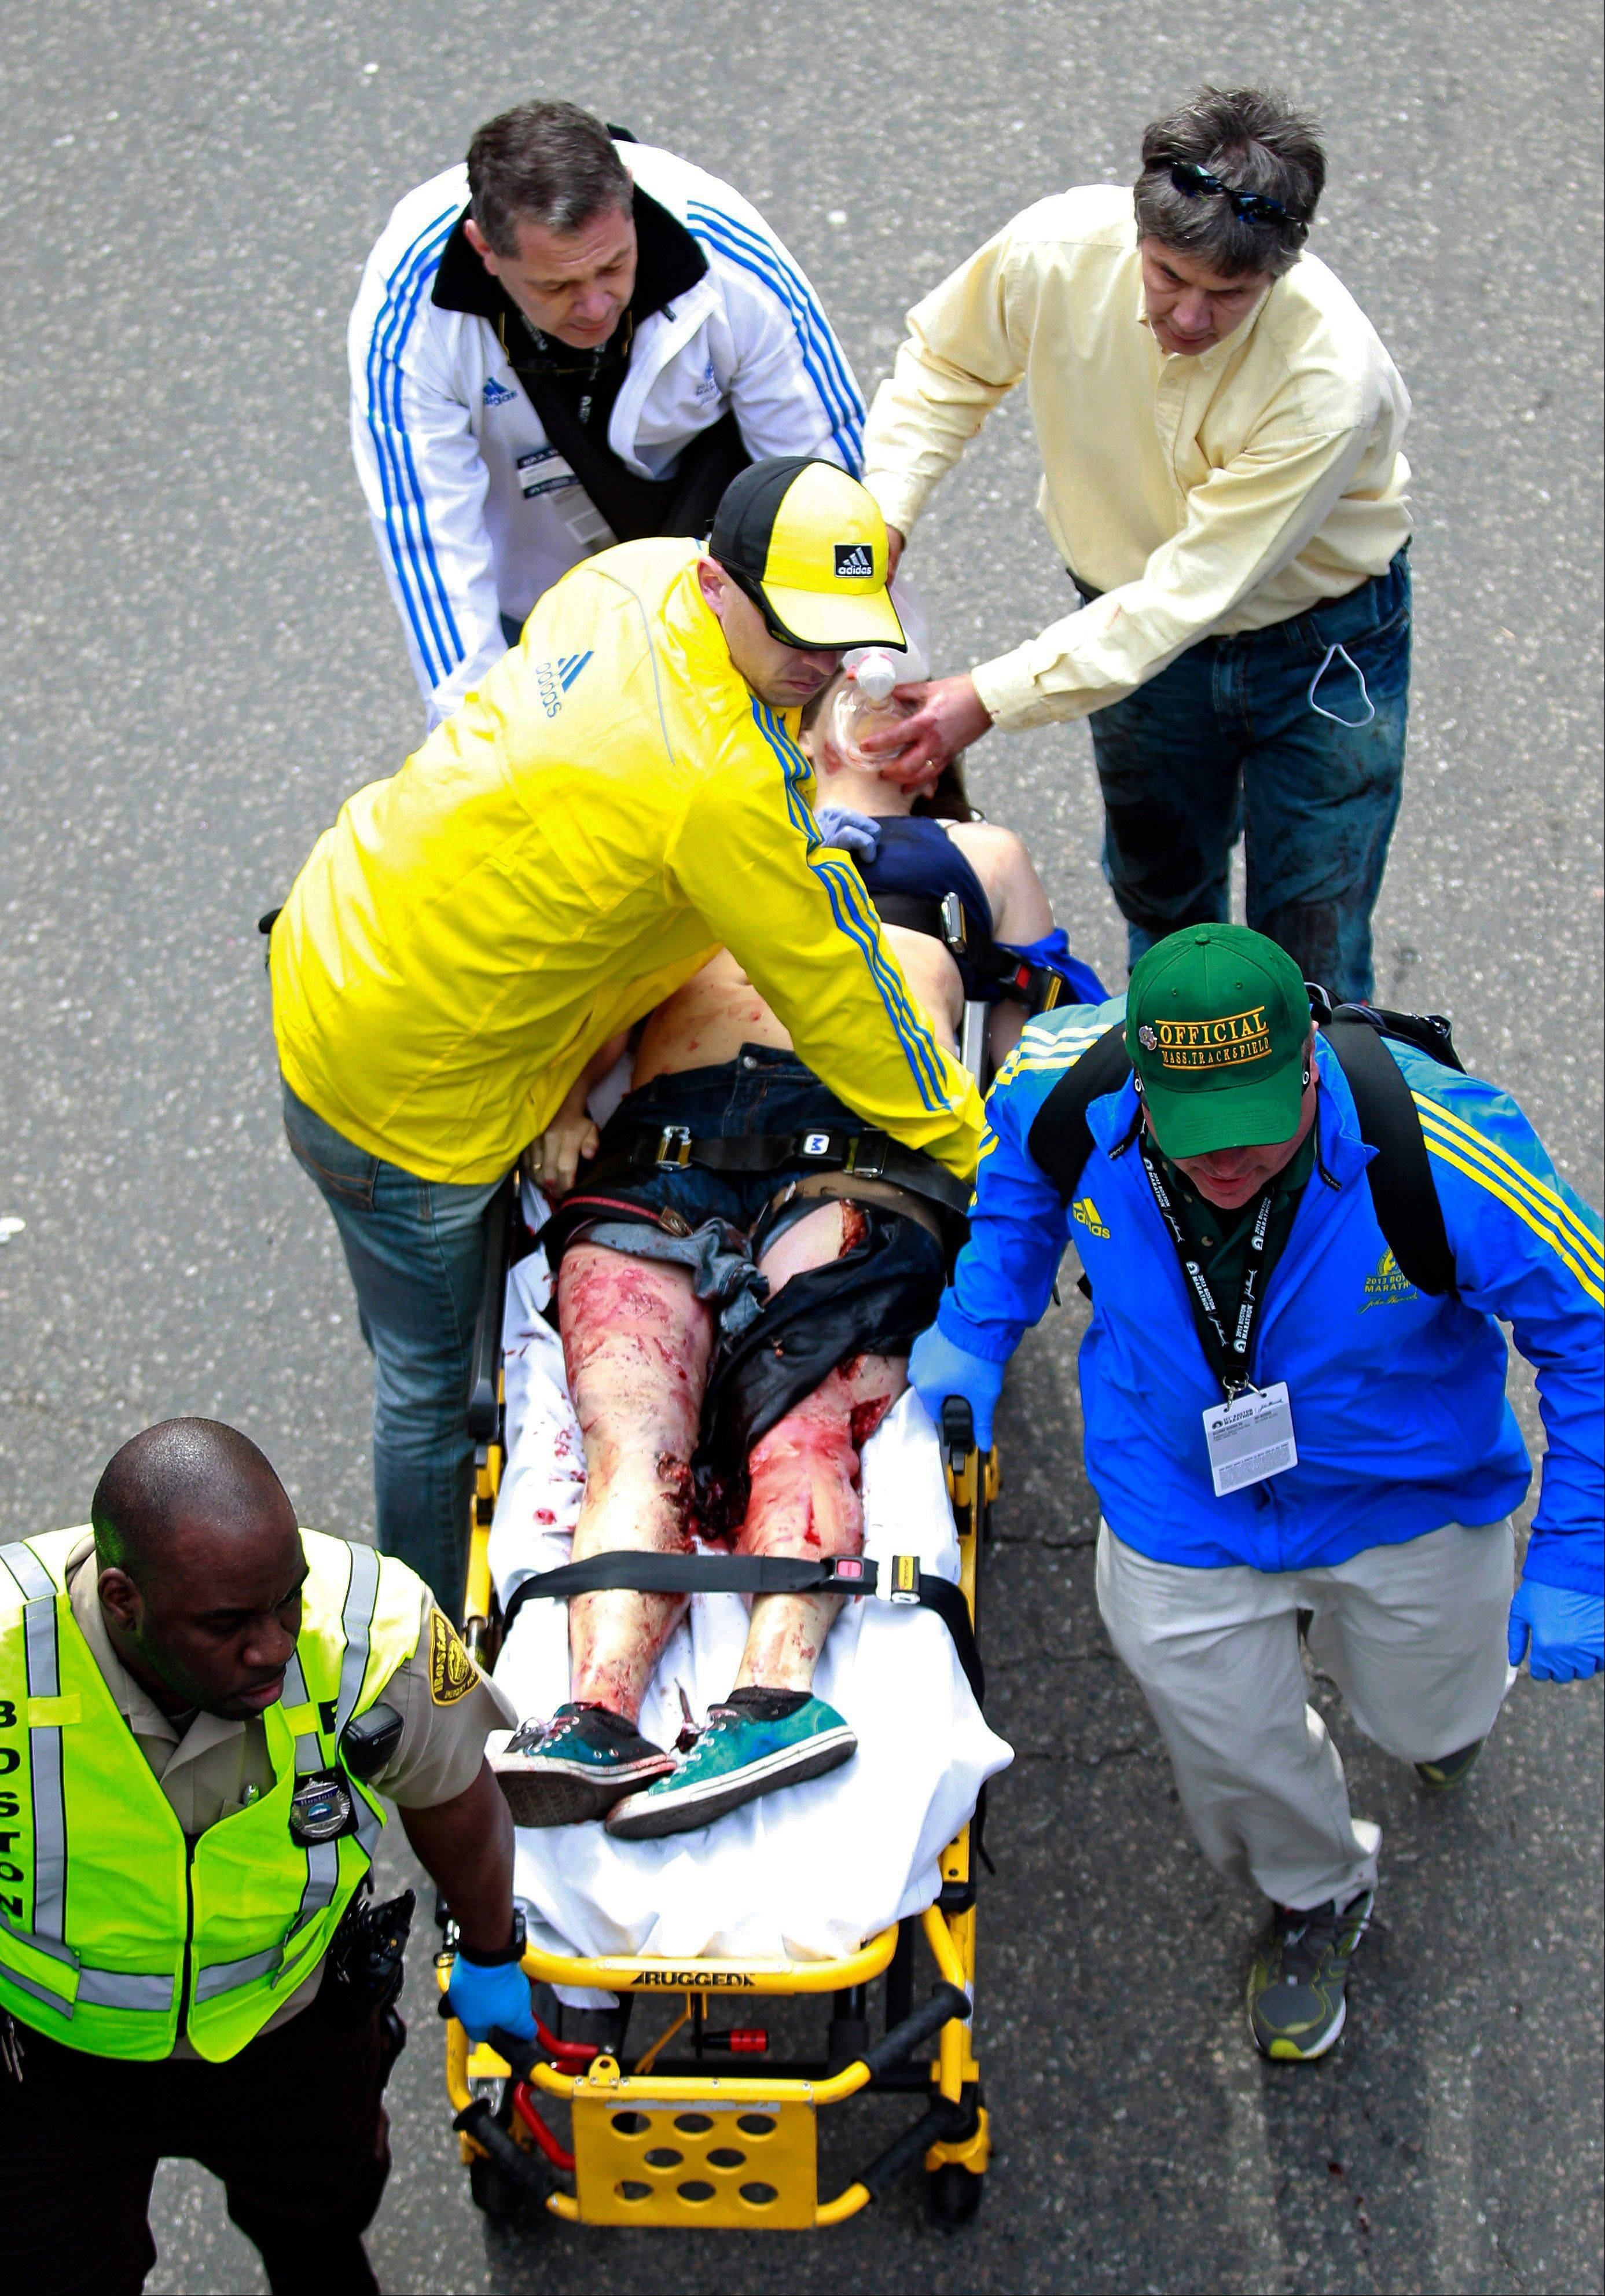 Medical workers aid an injured man at the finish line of the 2013 Boston Marathon following an explosion in Boston, Monday, April 15, 2013. Two bombs exploded near the finish of the Boston Marathon on Monday, killing two people, injuring 22 others and sending authorities rushing to aid wounded spectators, race organizers and police said.